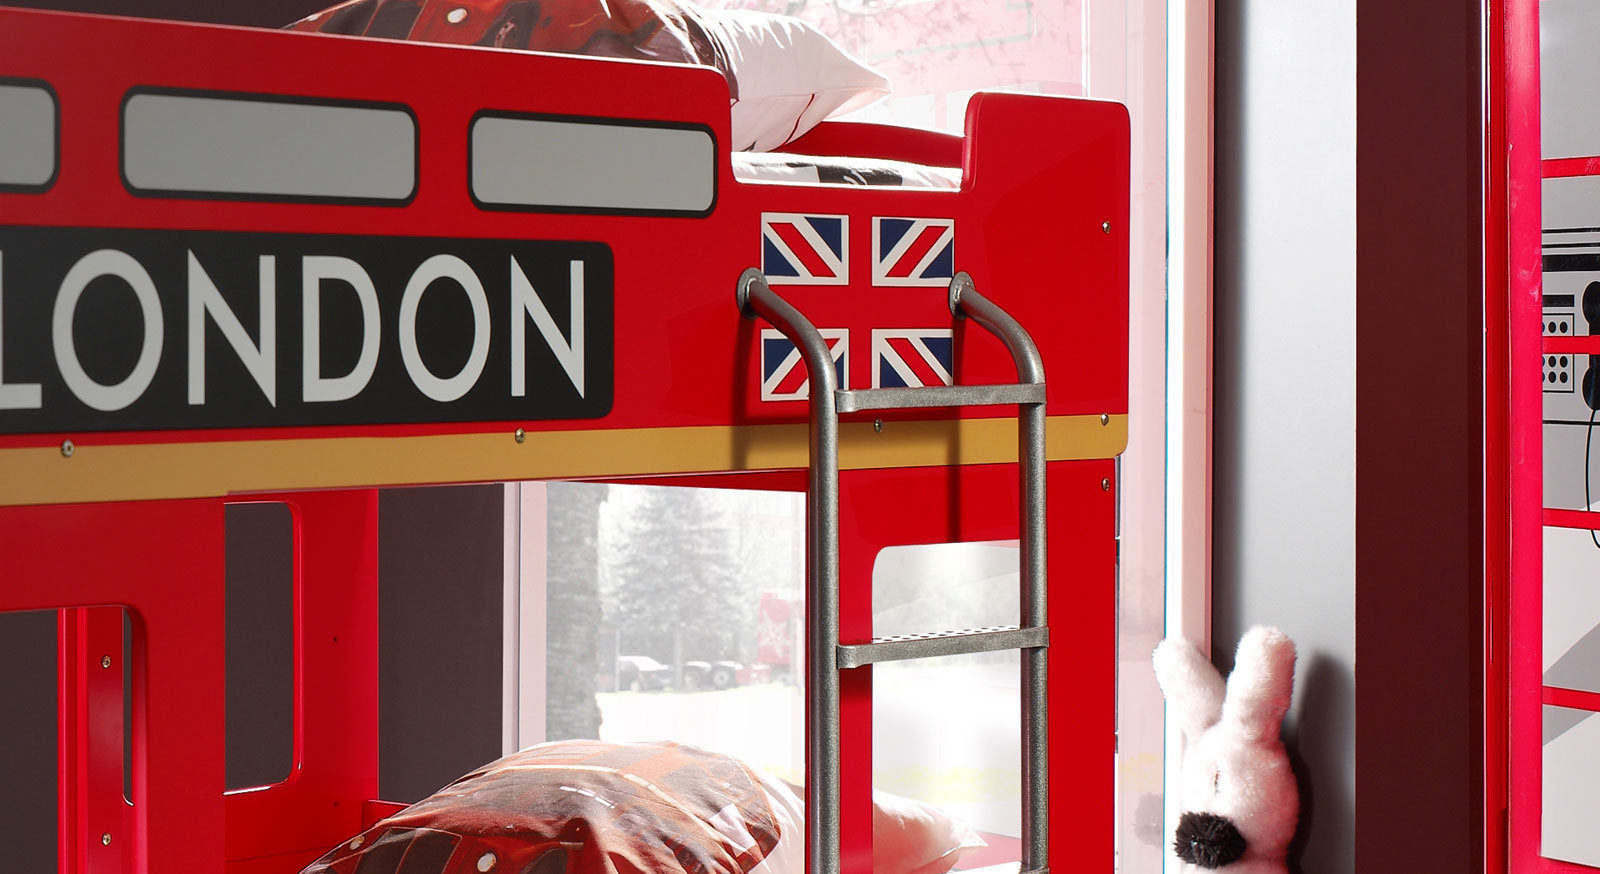 Etagenbett London Bus : Auto etagenbett in rot als london doppeldecker paddington